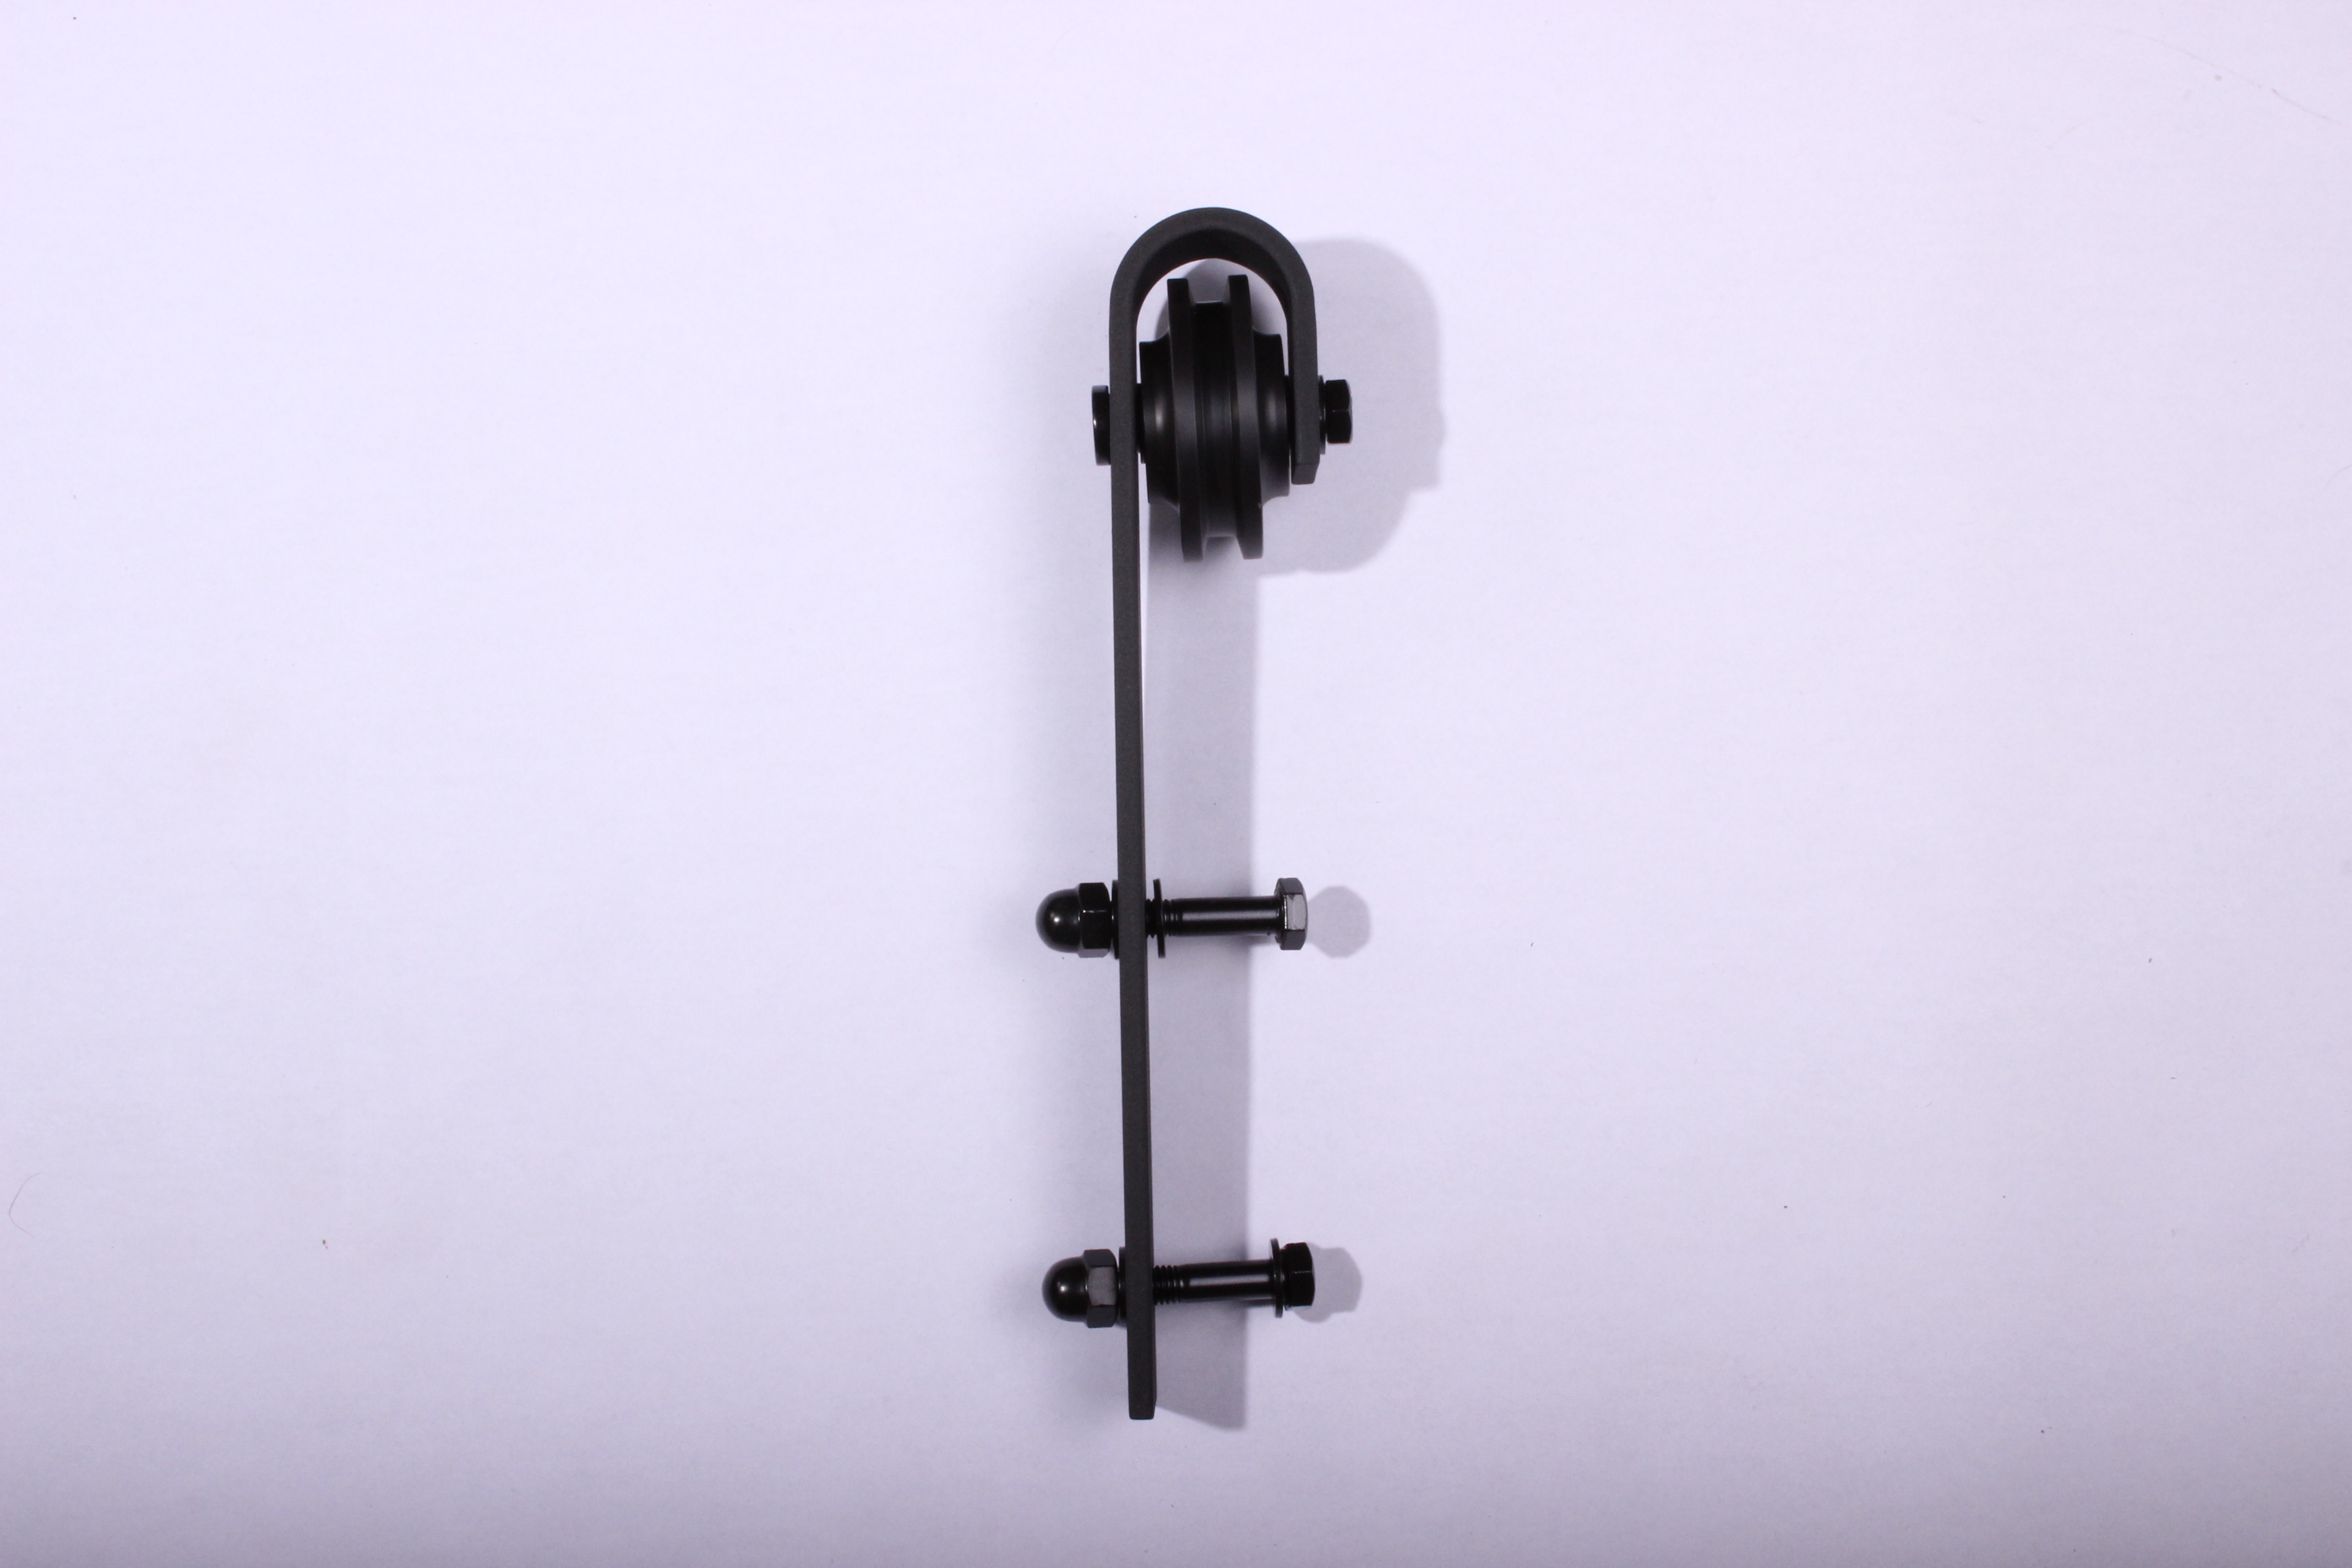 ... Sliding Wood Barn Door Hardware 78.7u2033, Black. Sale! ; 